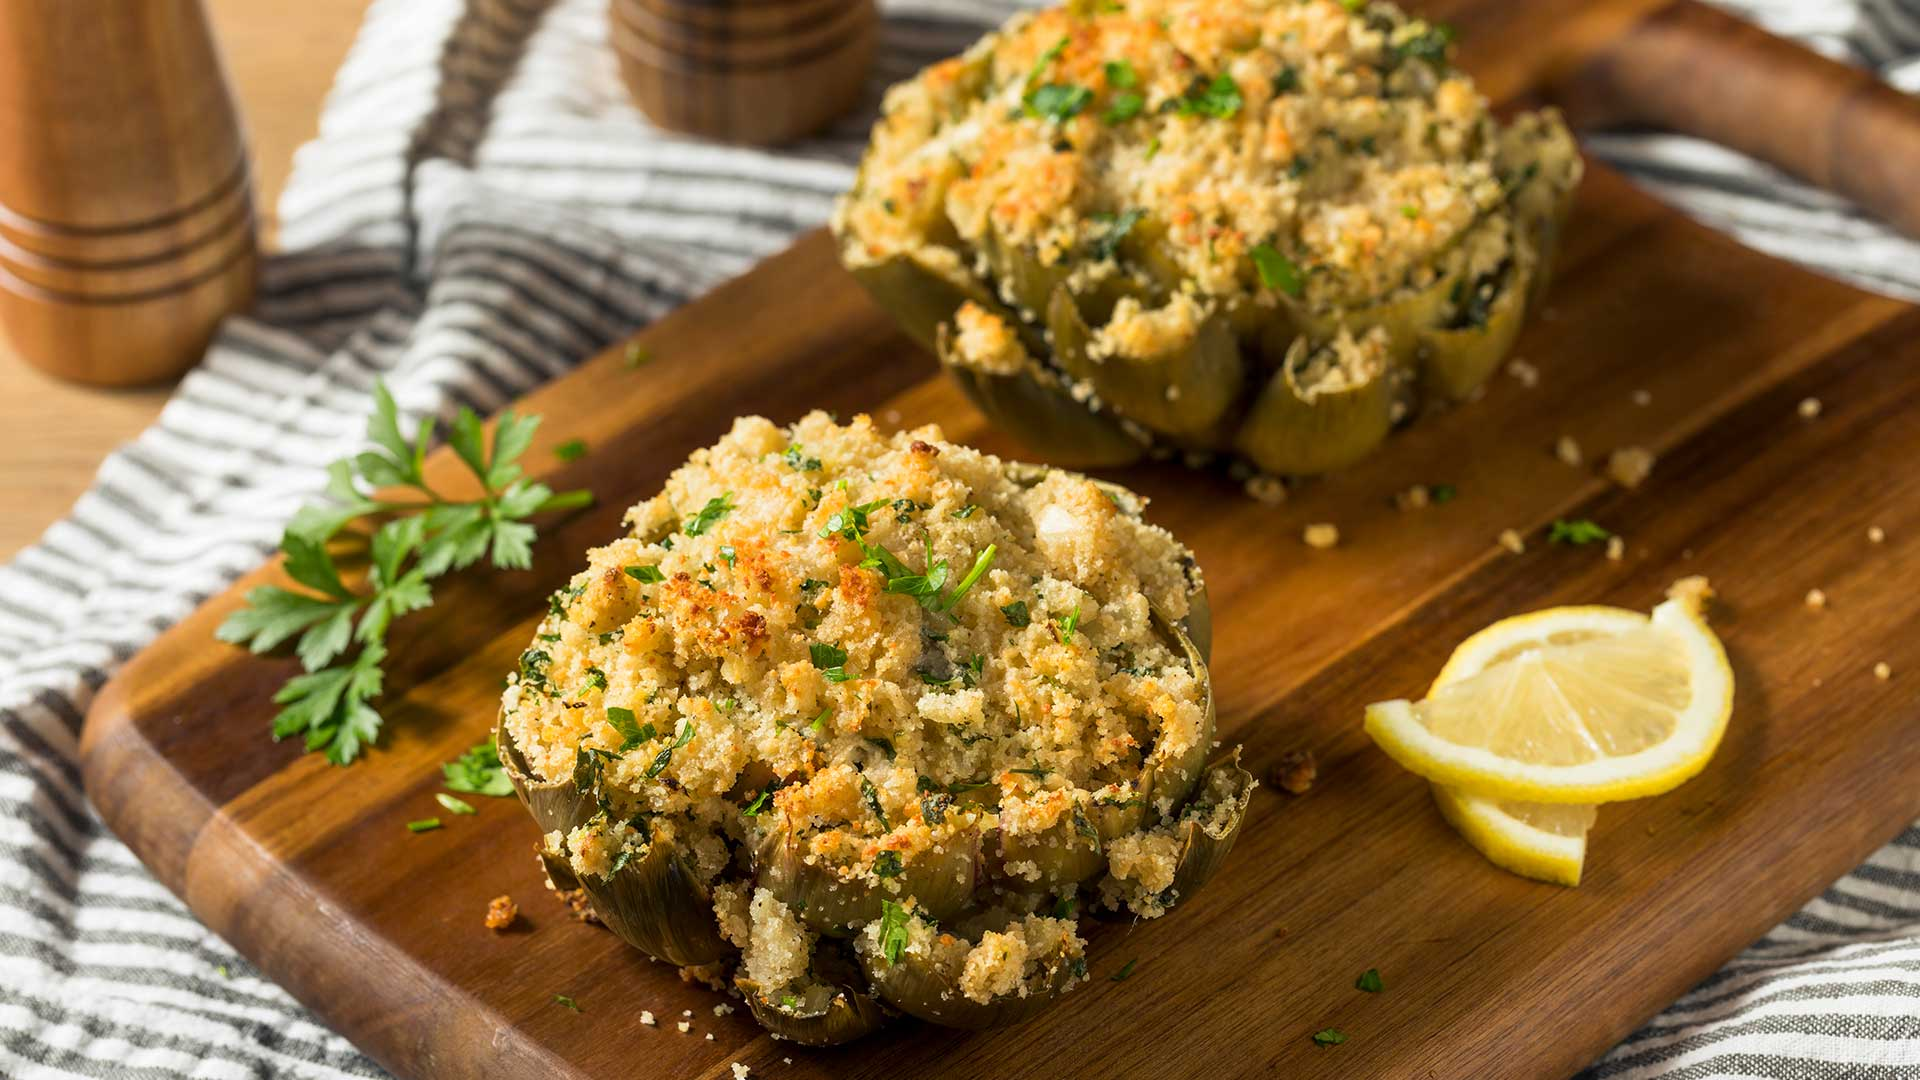 Homemade Stuffed Baked Artichokes Ready to Eat